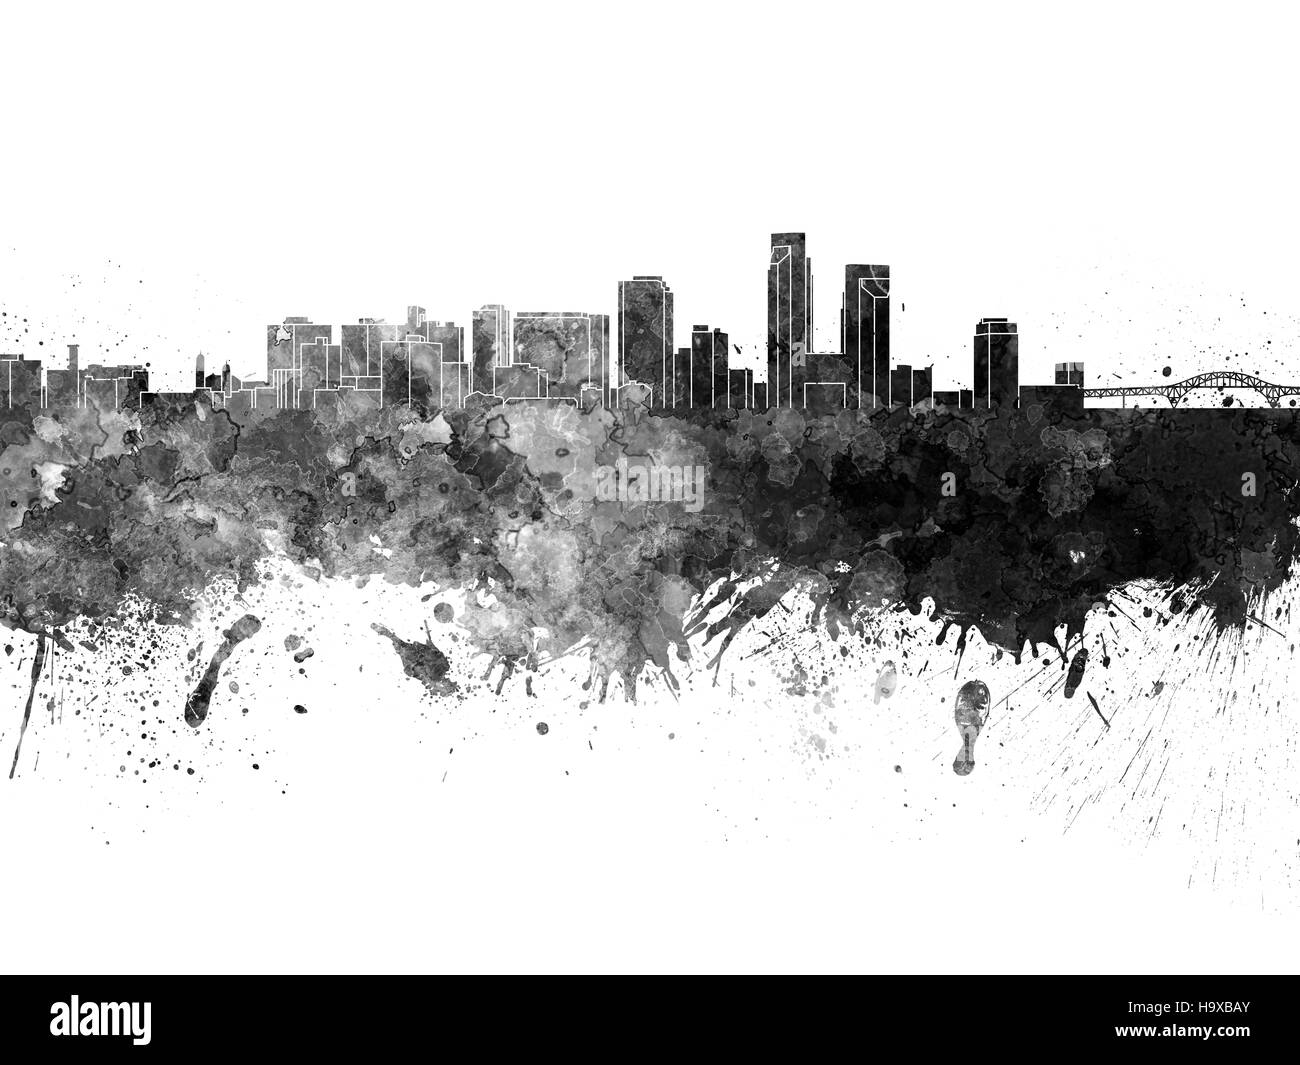 Corpus Christi skyline in black watercolor on white background - Stock Image